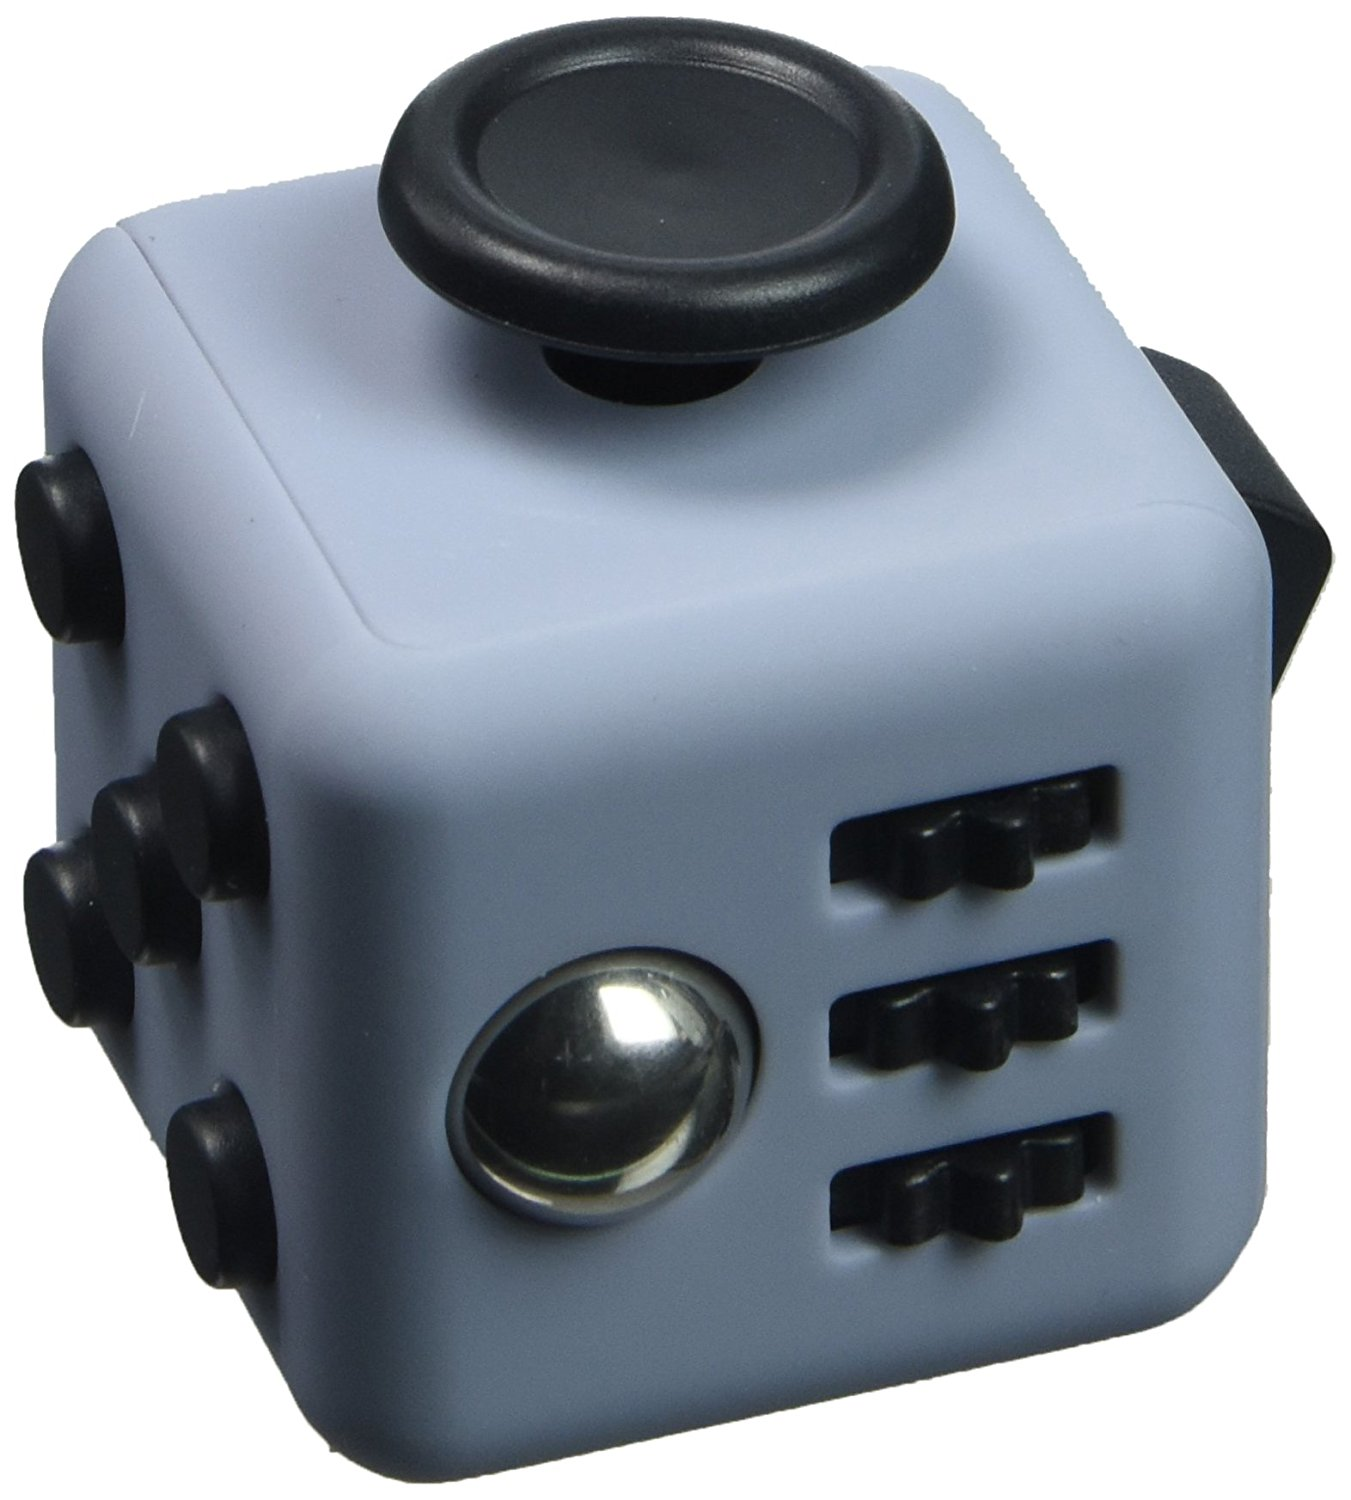 Focus Cube - (6 Colors) Fidget Cube Toy For Anxiety Stress Helps Focusing Fidget Toy Focus Toy for Kids & Adults - Stress Reducer Relieves ADHD Anxiety Ceramic Cube Bearing